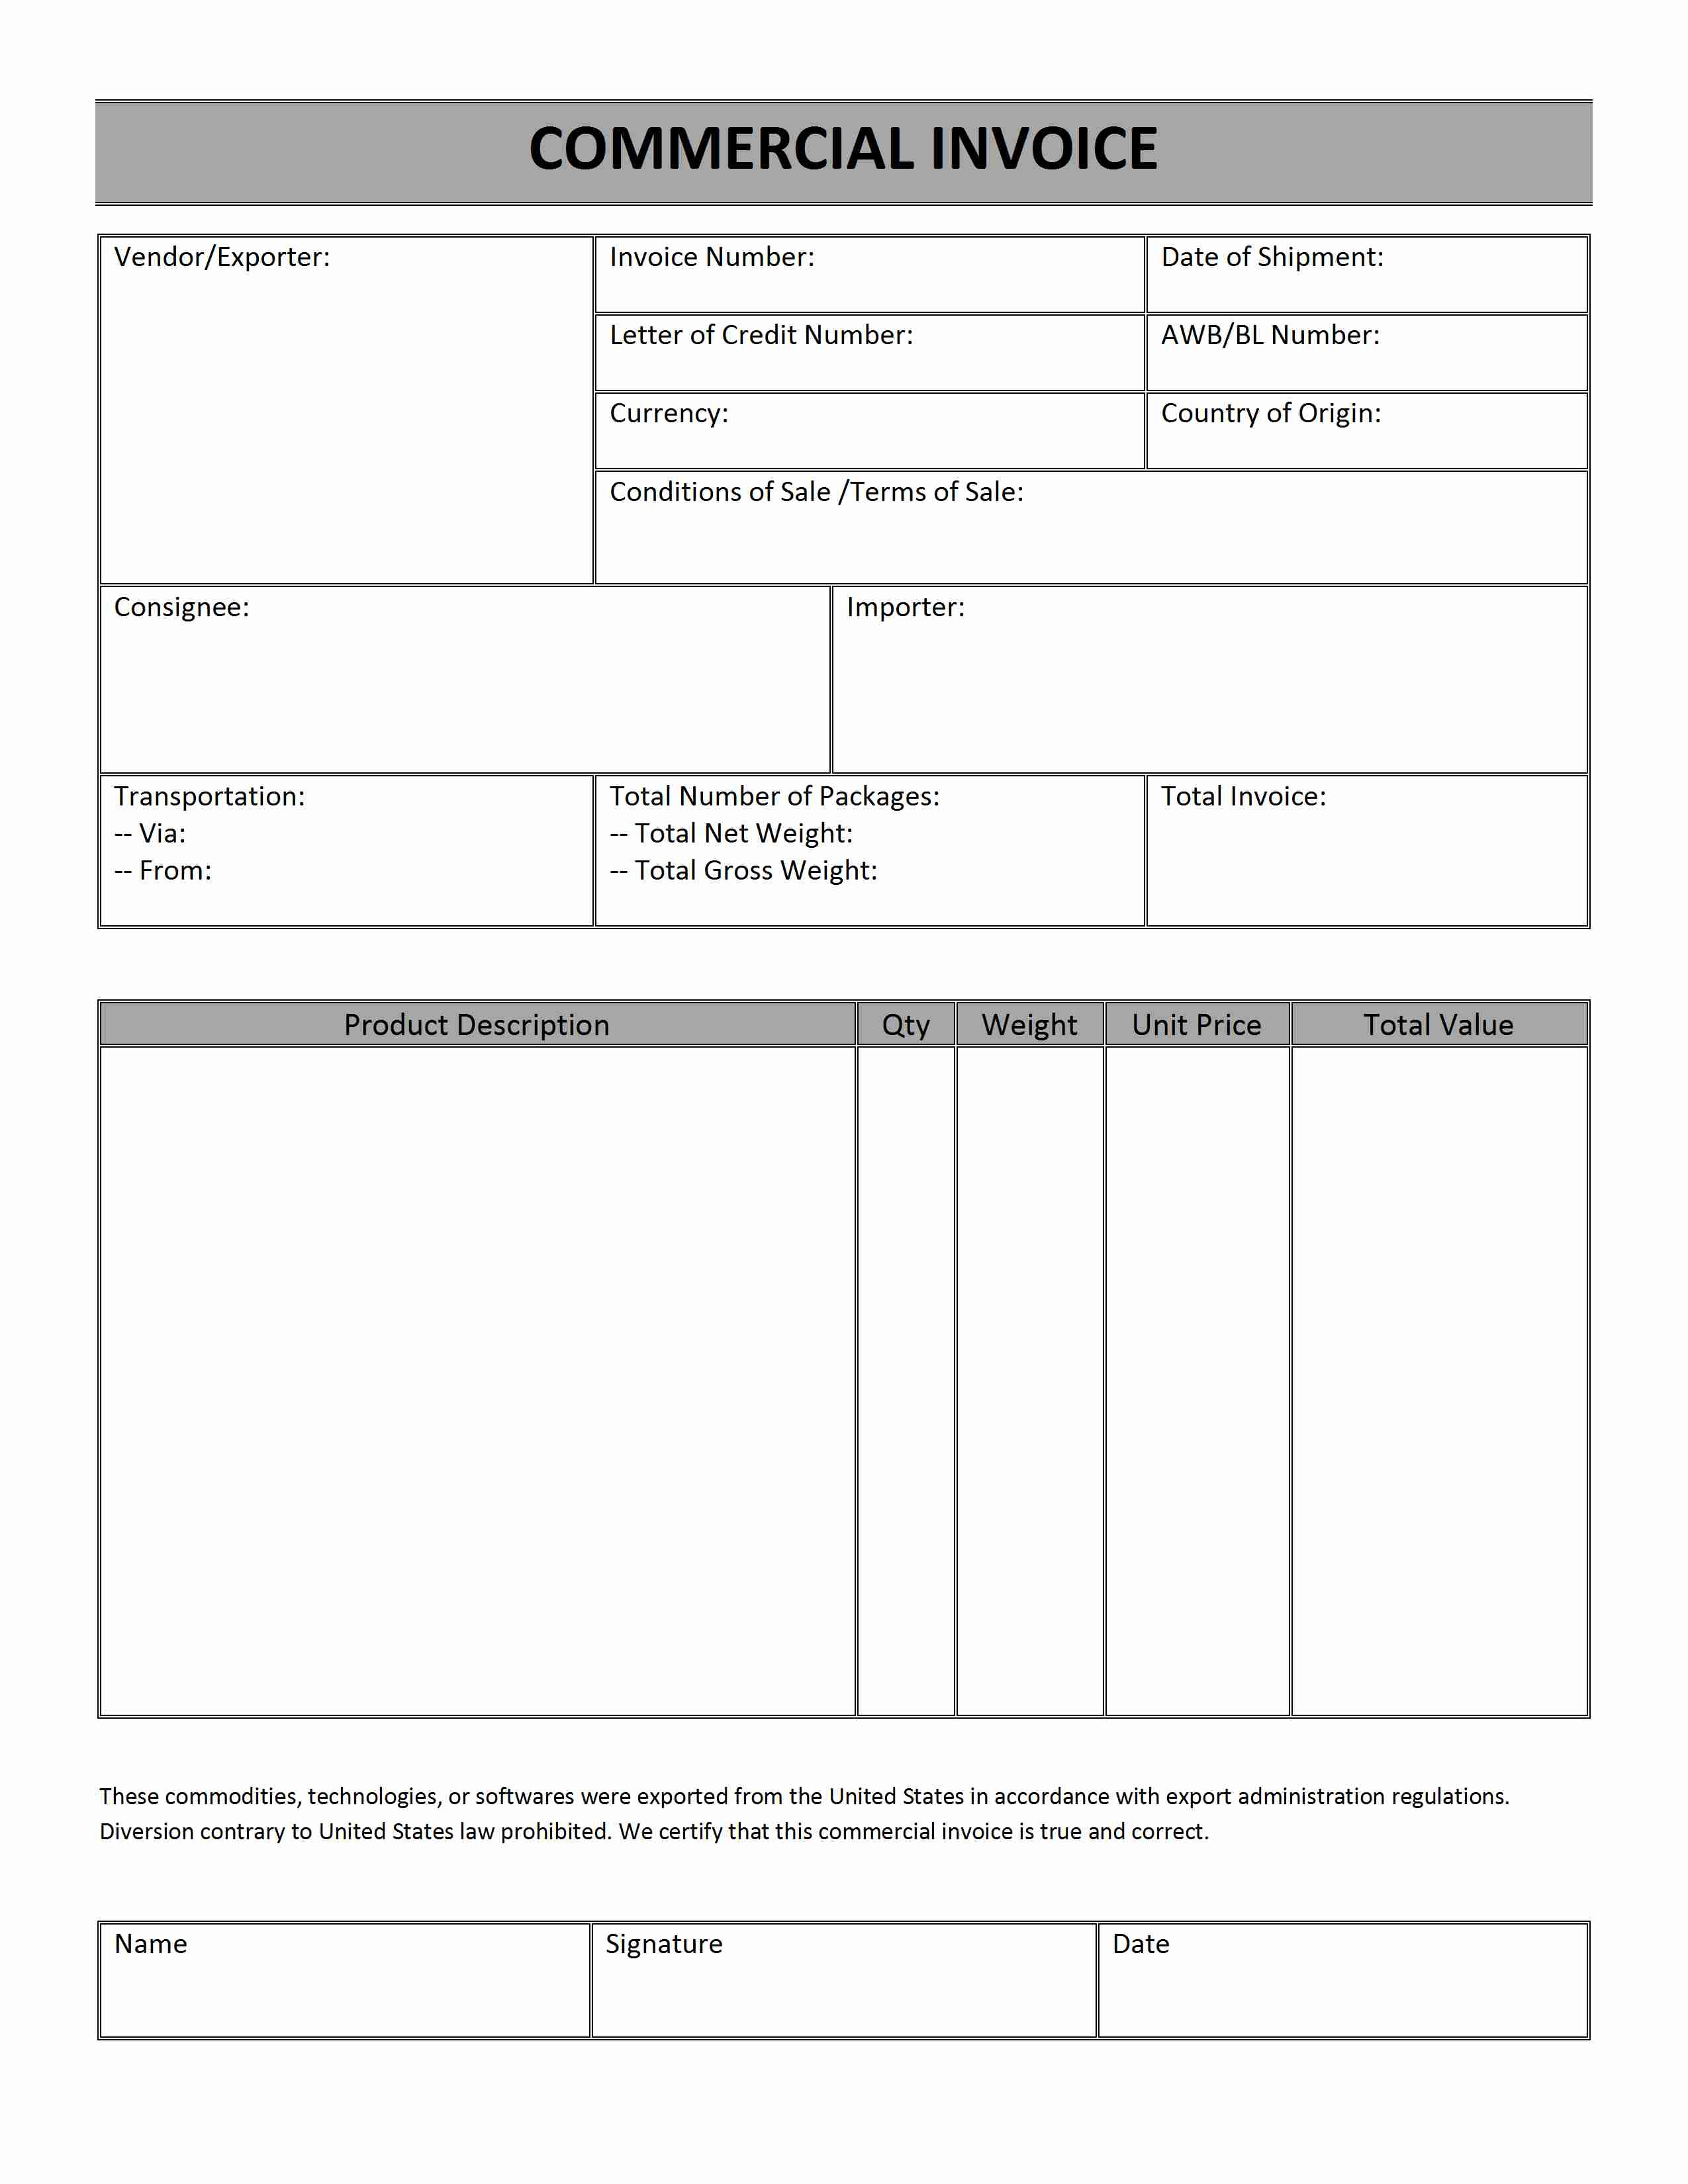 Maidofhonortoastus  Remarkable Printable Sales Invoice Simple Invoice Form Free Invoice  With Likable Printable Receipt Free  Free Printable Raffle Tickets  Receipt   Printable With Extraordinary Invoicing App Also Past Due Invoice In Addition What Is An Ebay Invoice And My Invoice As Well As Rent Invoice Additionally Microsoft Excel Invoice Template From Happytomco With Maidofhonortoastus  Likable Printable Sales Invoice Simple Invoice Form Free Invoice  With Extraordinary Printable Receipt Free  Free Printable Raffle Tickets  Receipt   Printable And Remarkable Invoicing App Also Past Due Invoice In Addition What Is An Ebay Invoice From Happytomco